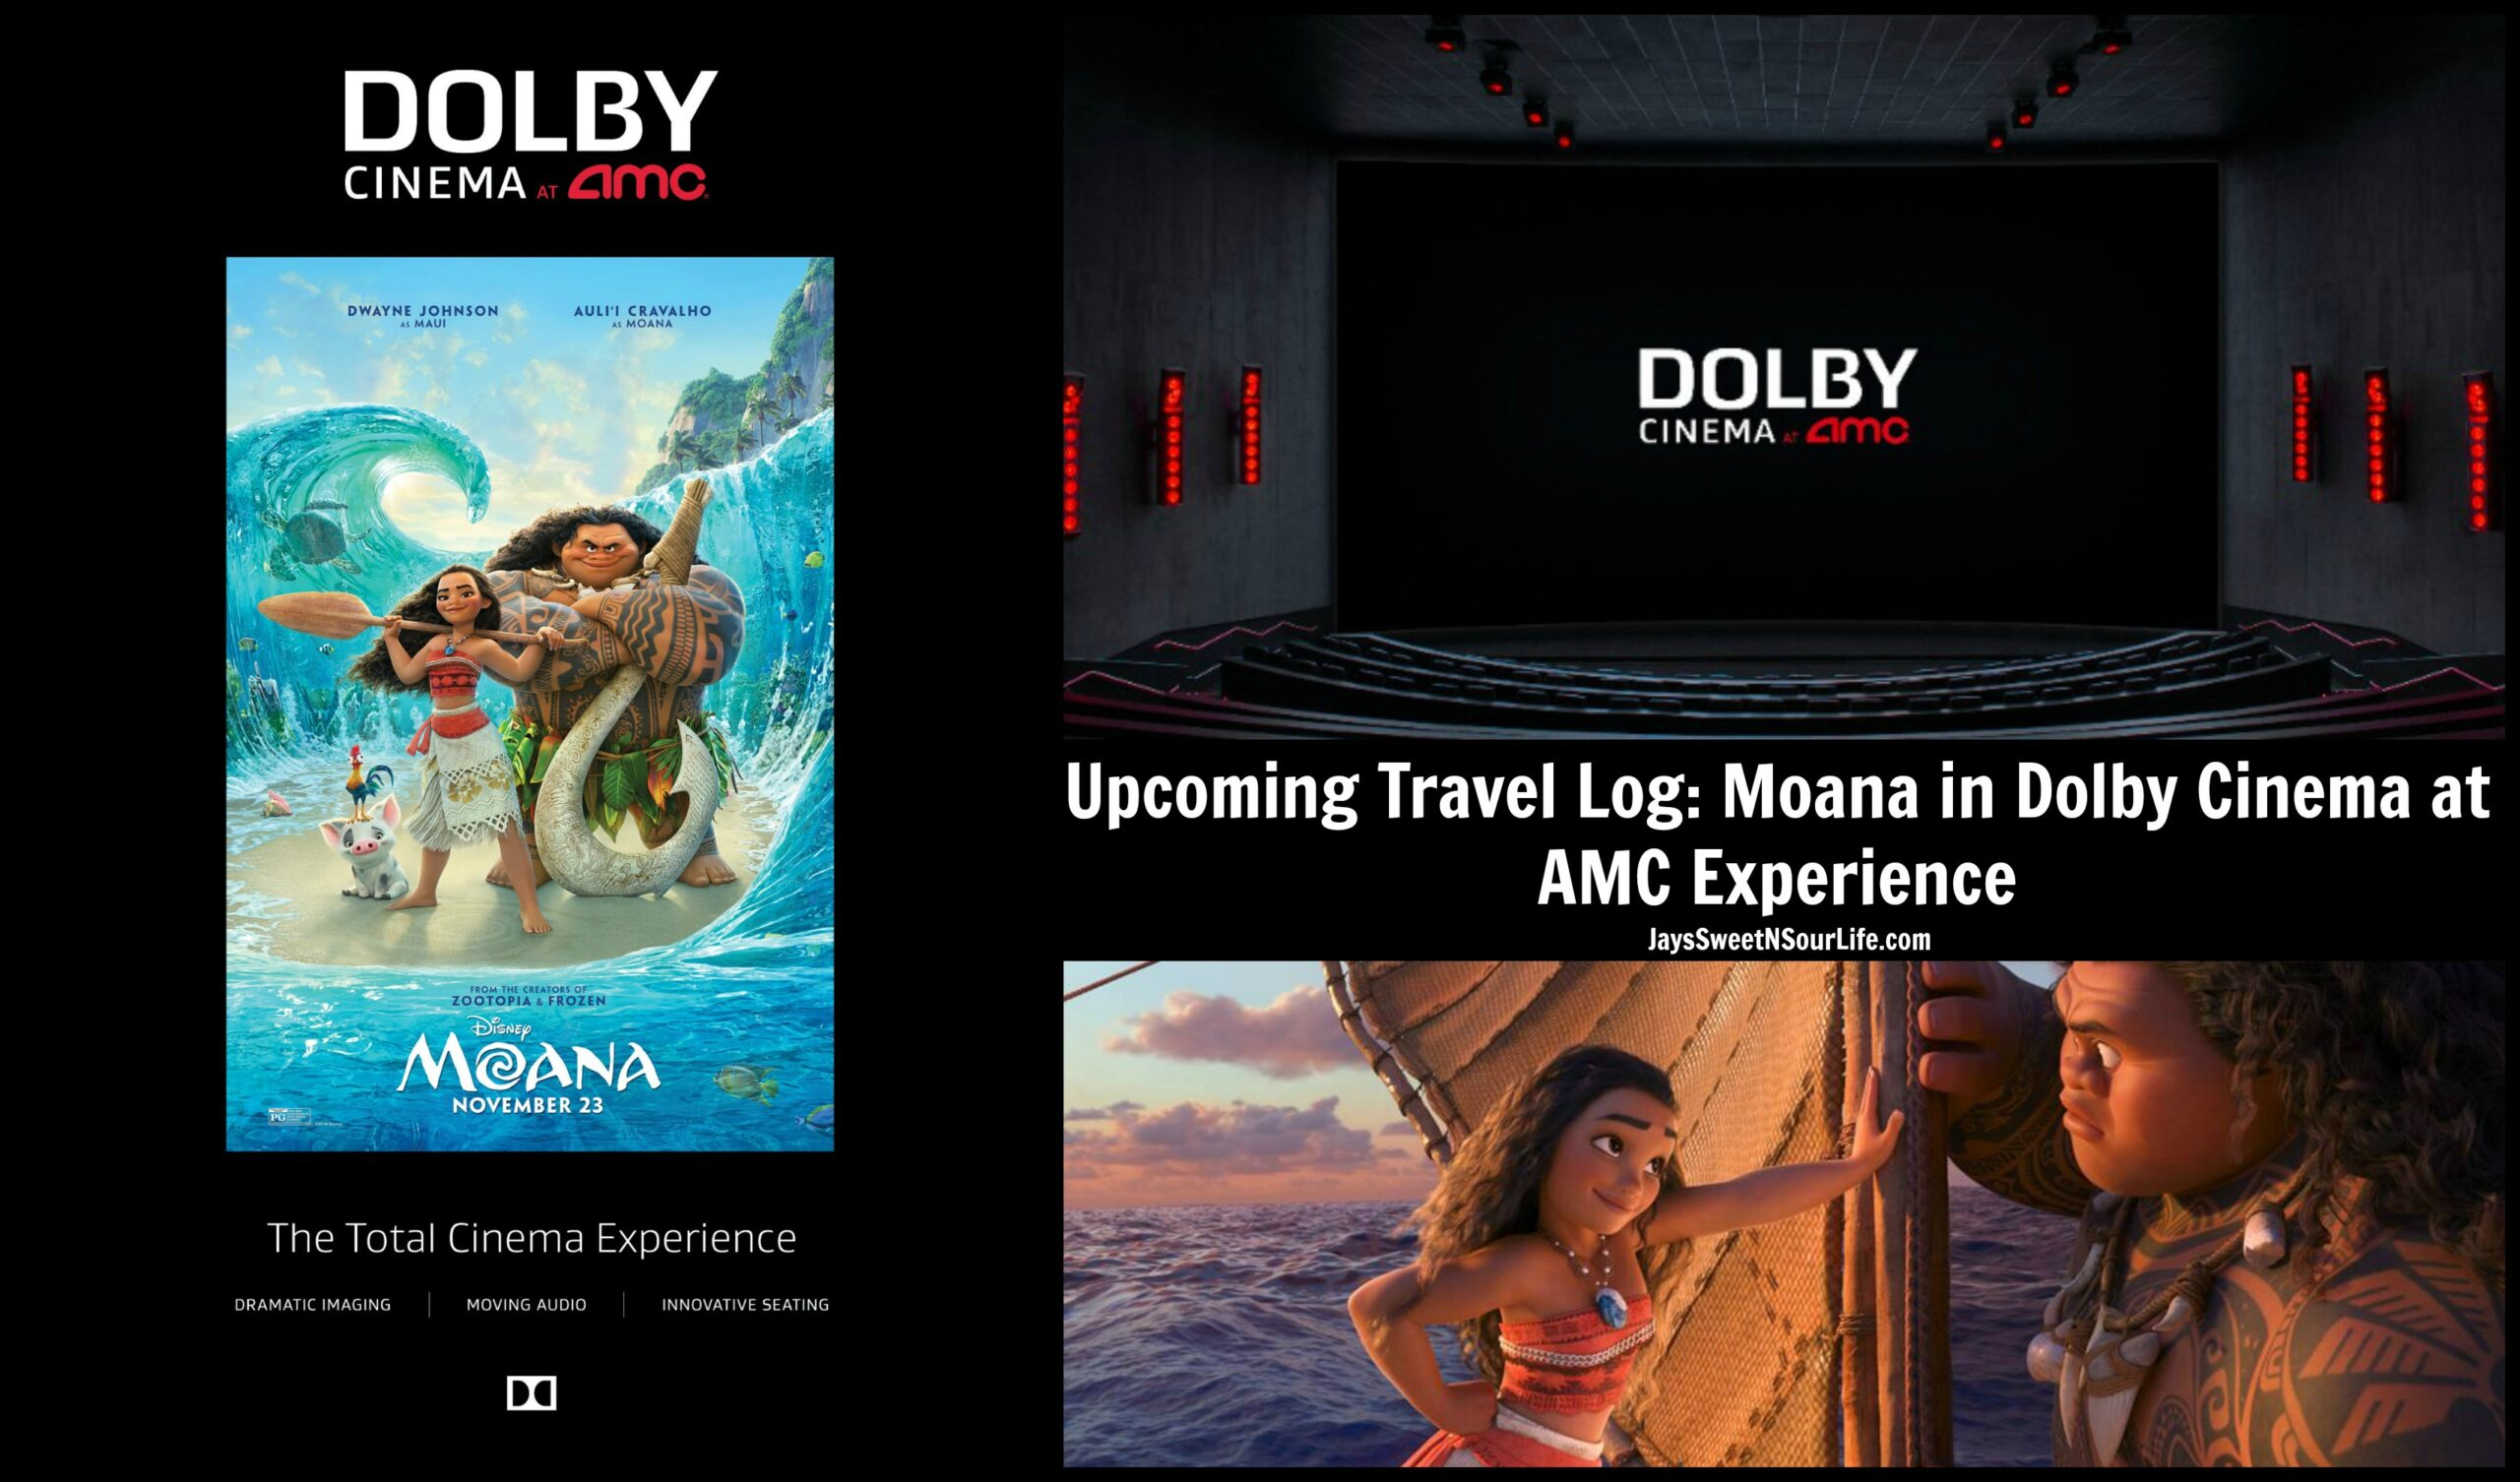 Willowbrook Amc 24 Upcoming Travel Log Moana In Dolby Cinema At Amc Experience